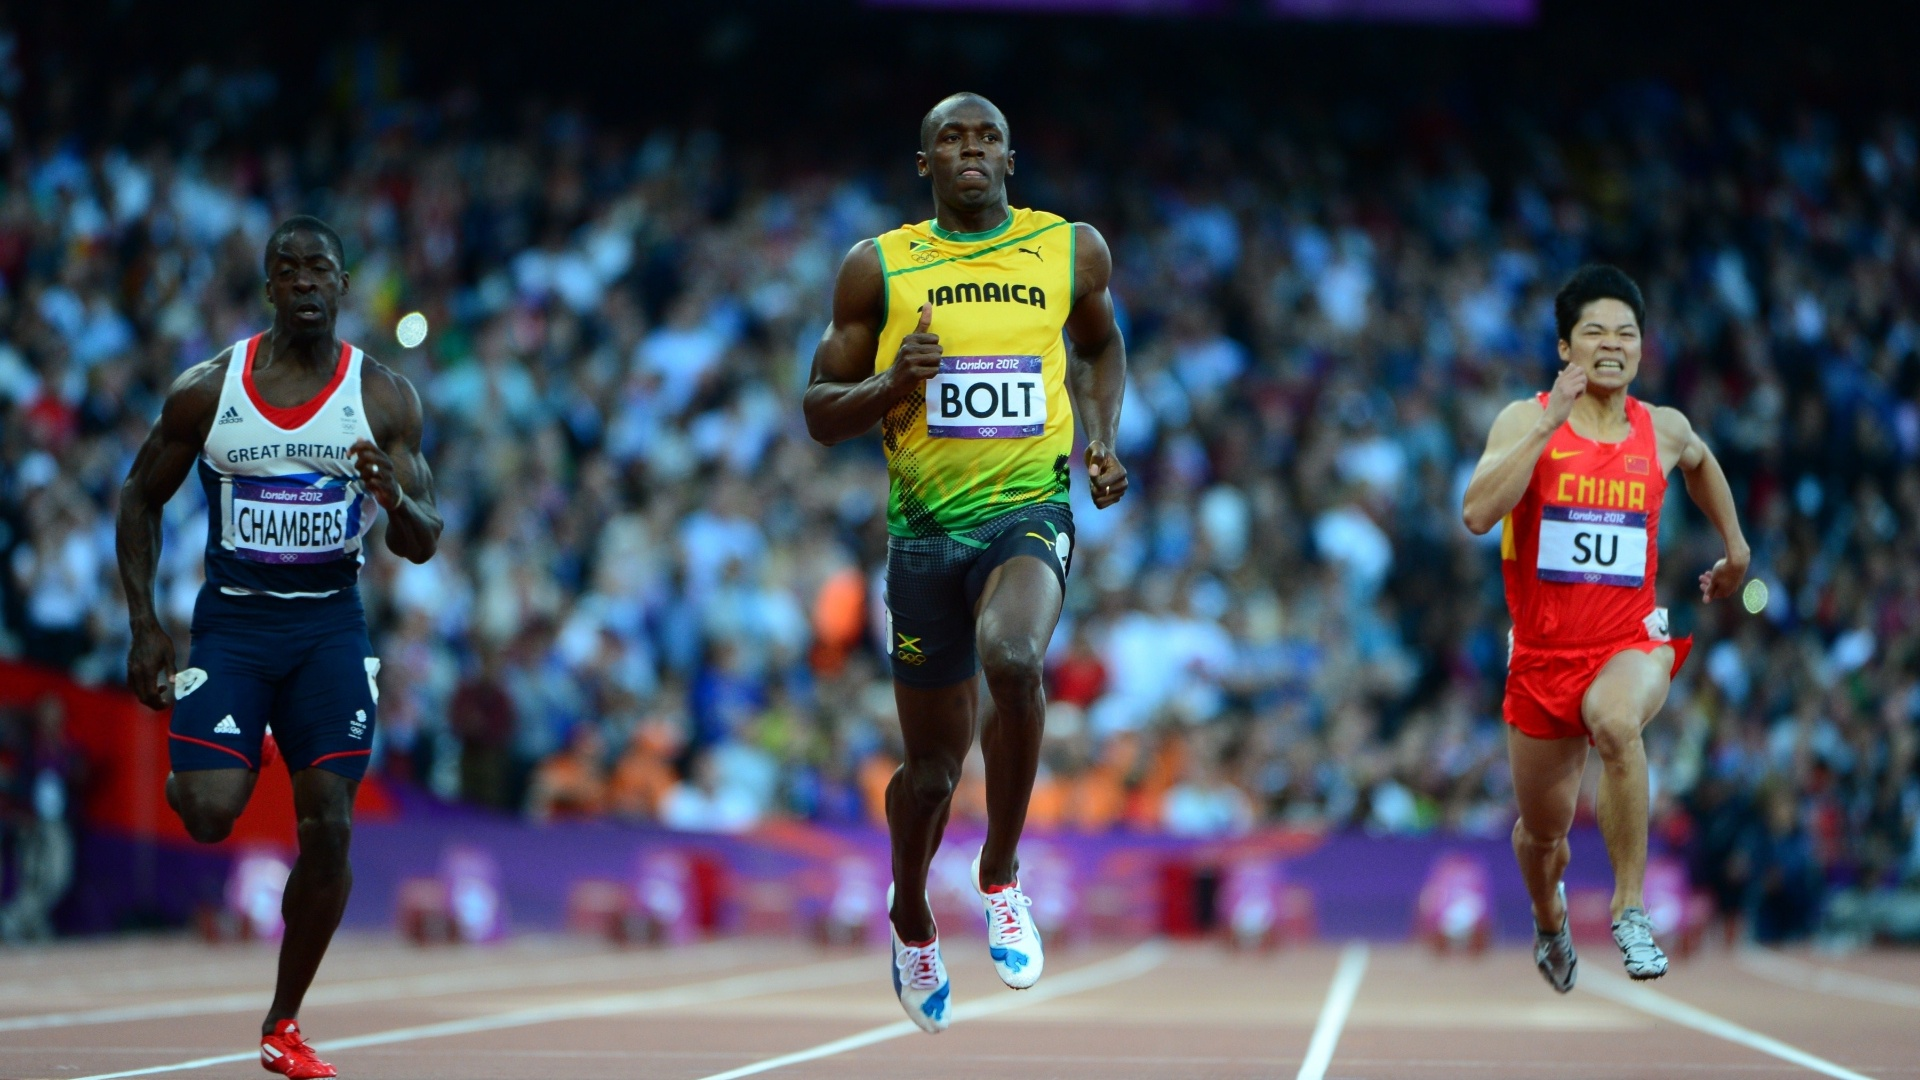 Jamaicano Usain Bolt (c) disputa a semifinal dos 100 m rasos entre o britnico Dwain Chambers (e) e o chins Su Bingtian